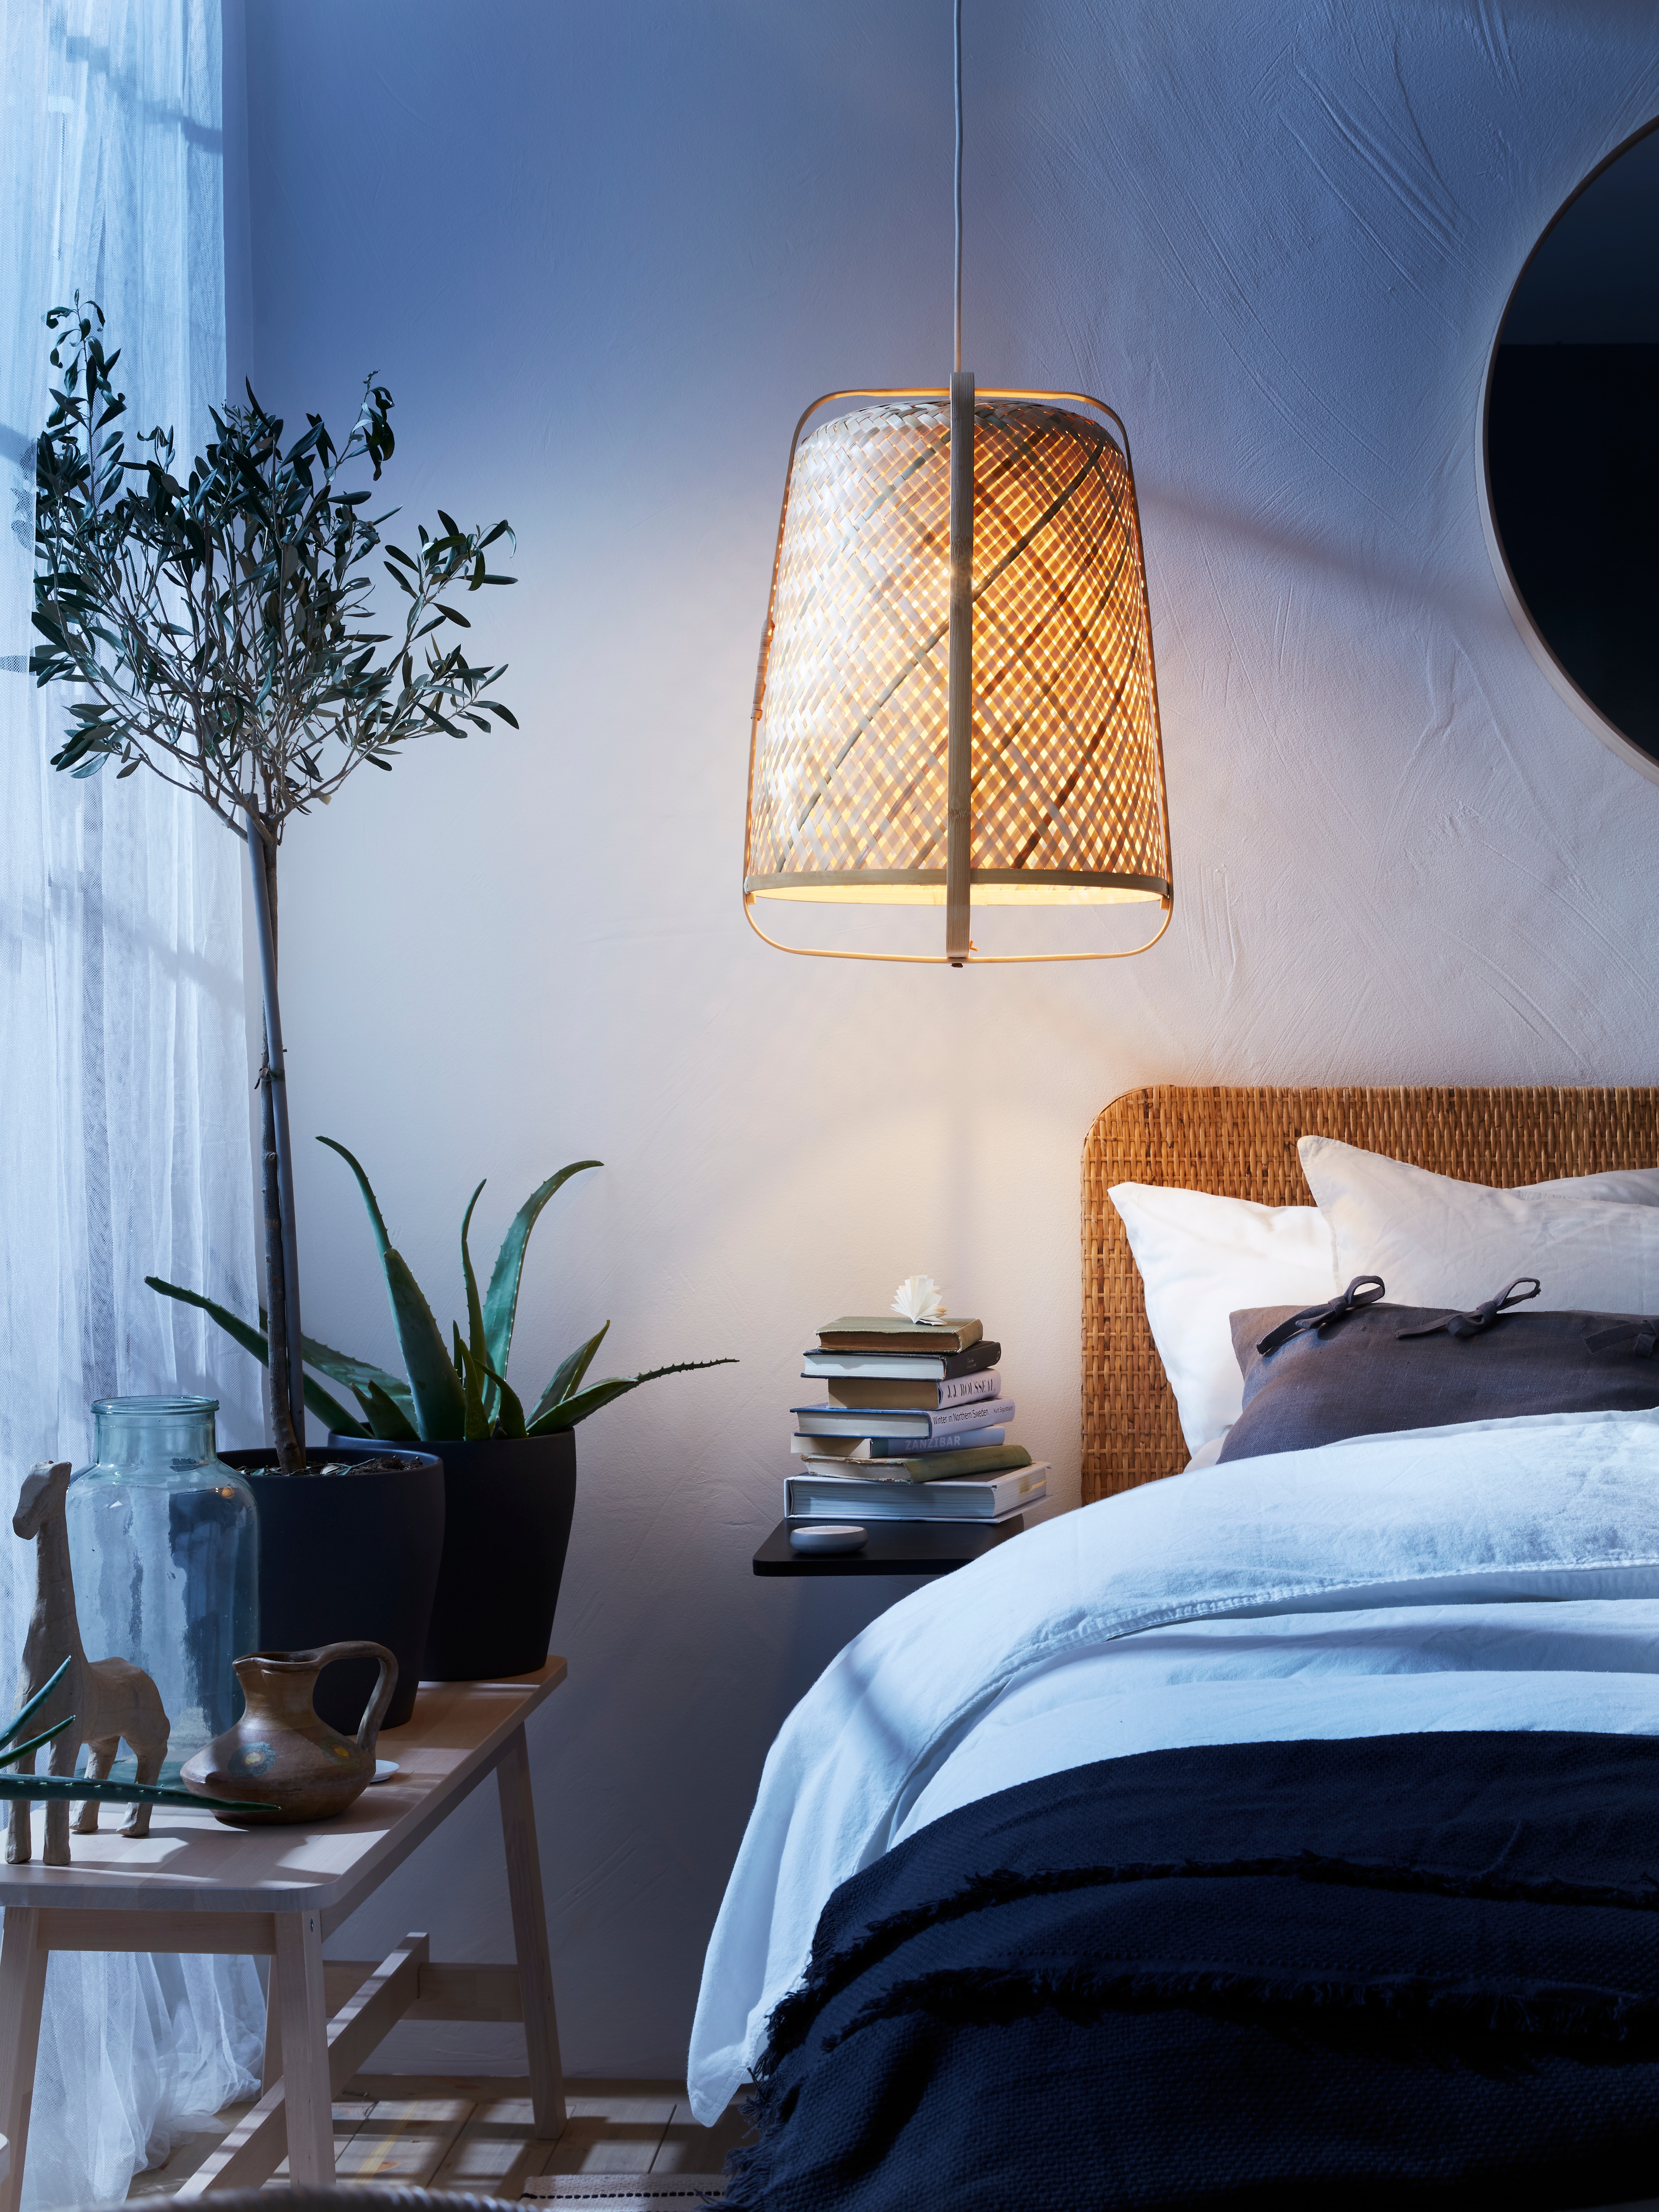 An illuminated, bamboo KNIXHULT pendant lamp that's handwoven and bell shaped, hanging above a bed with a rattan headboard.